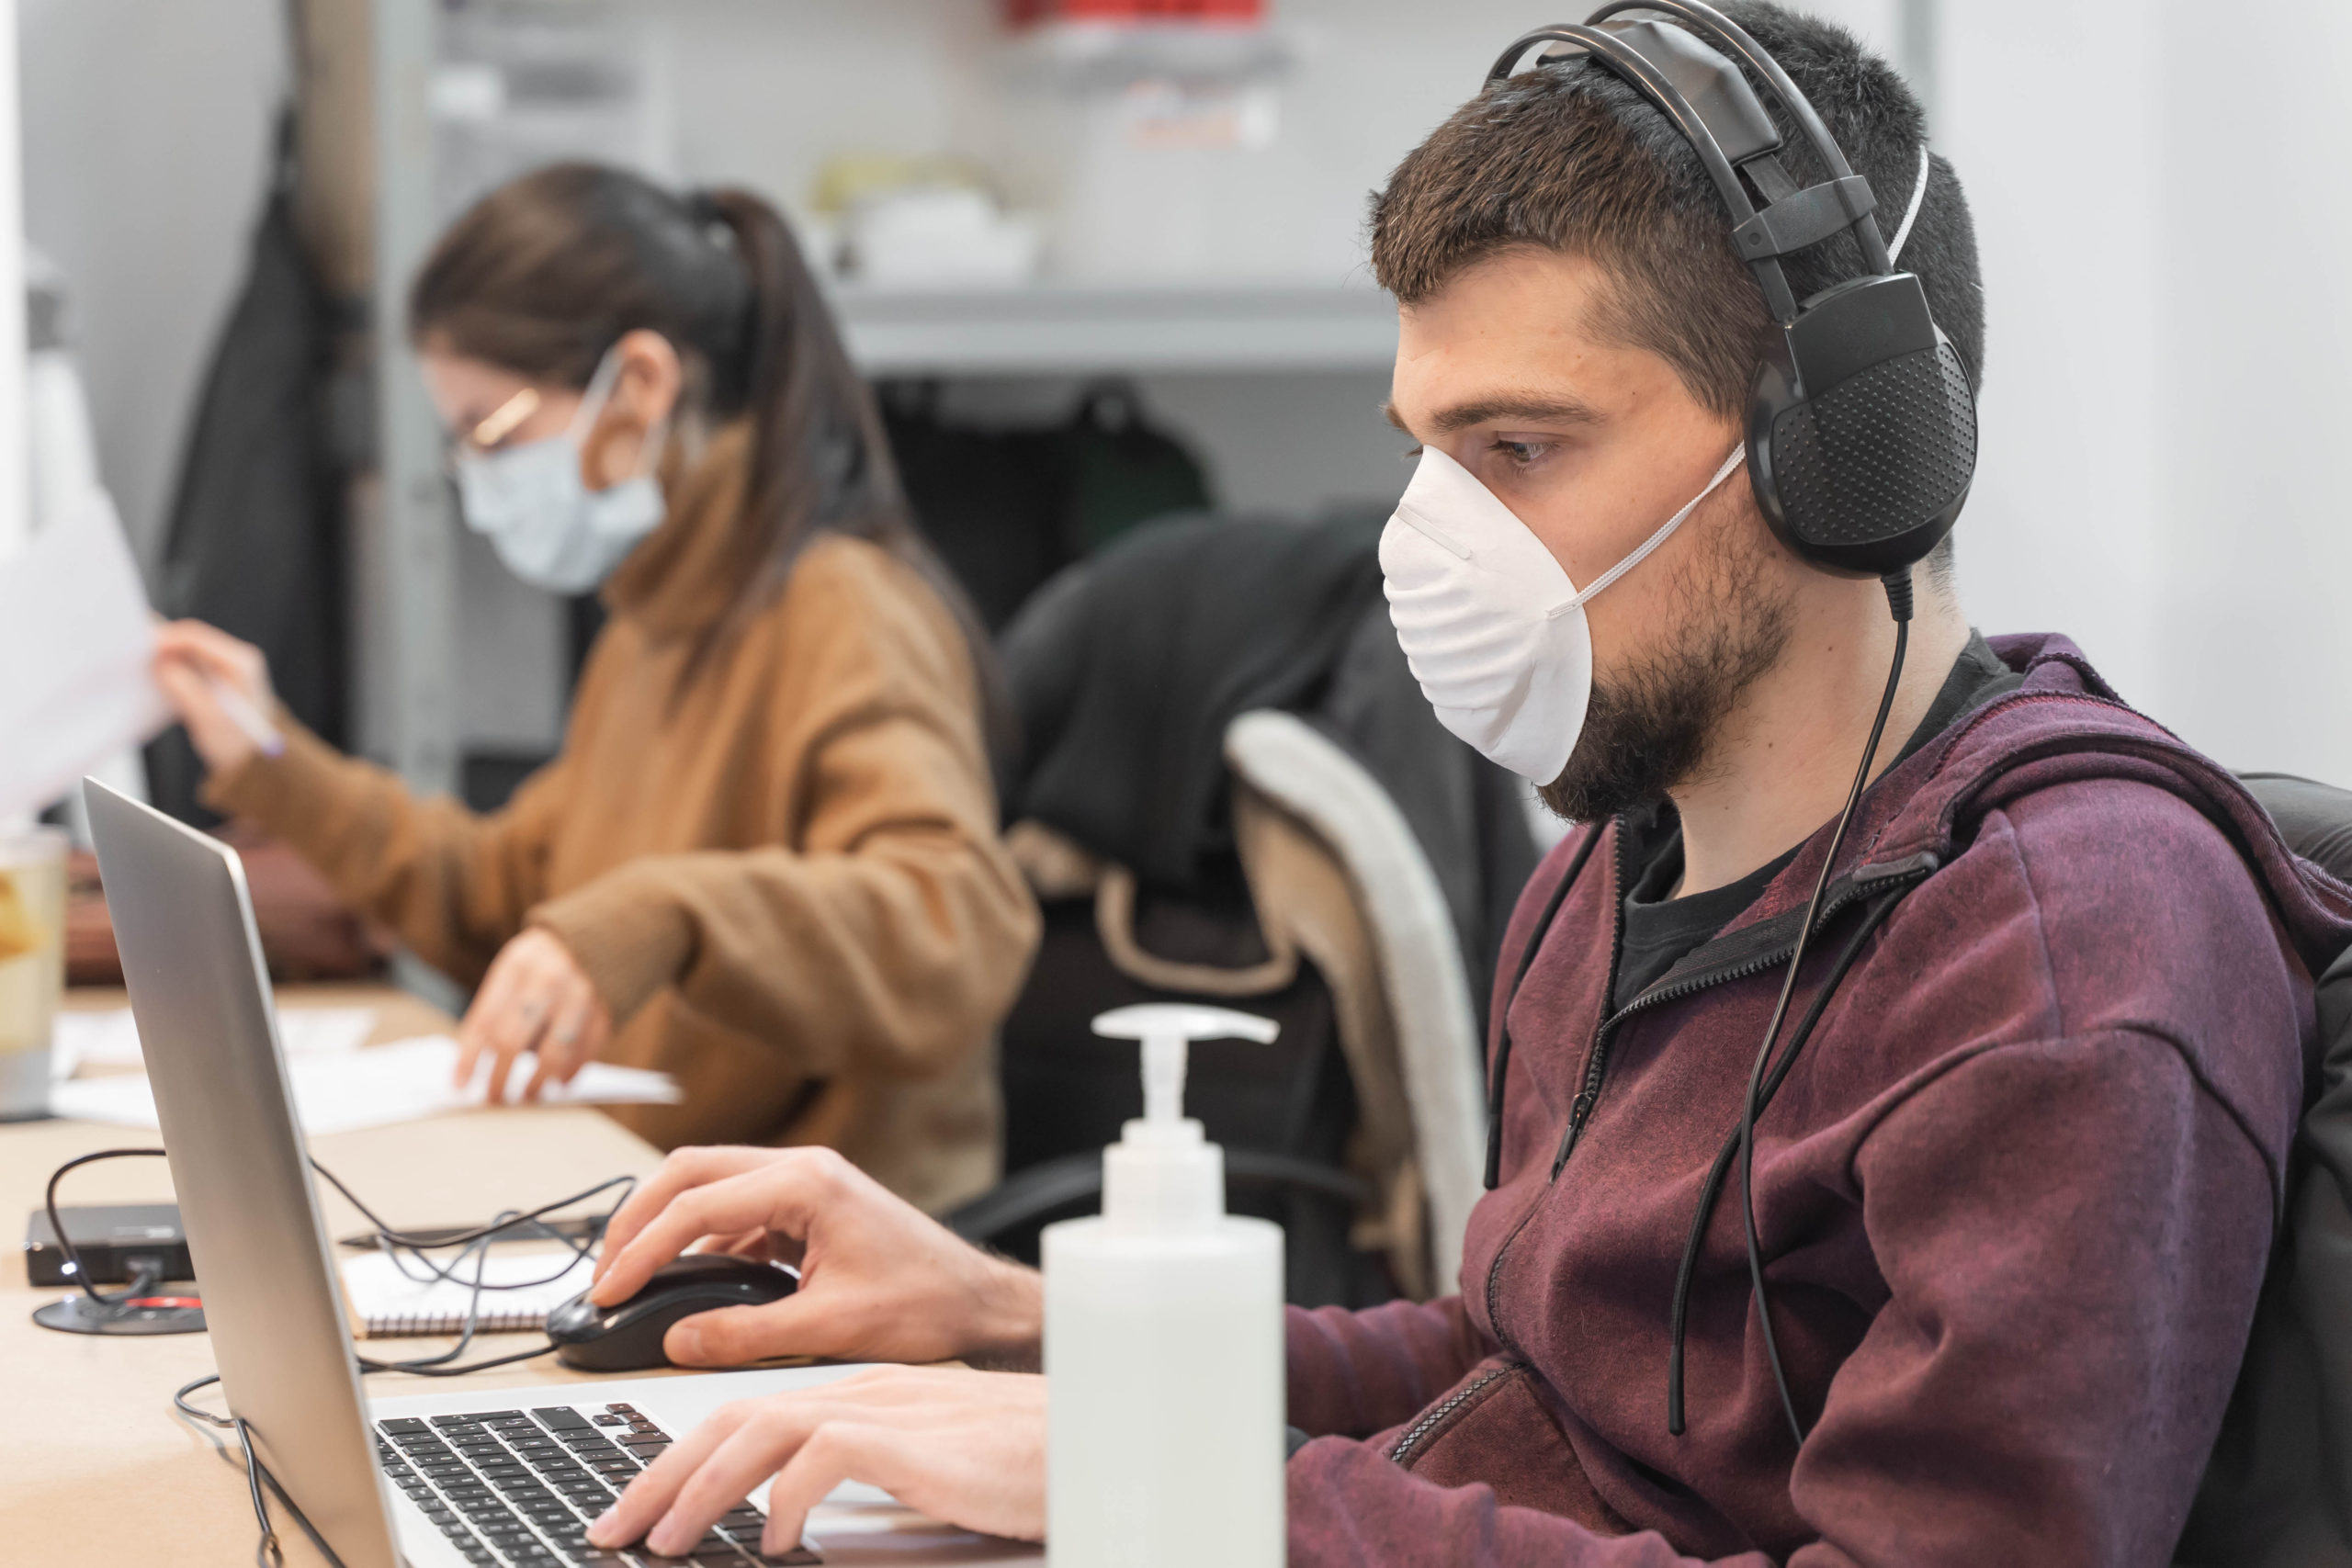 Two workers in an office wearing face masks.